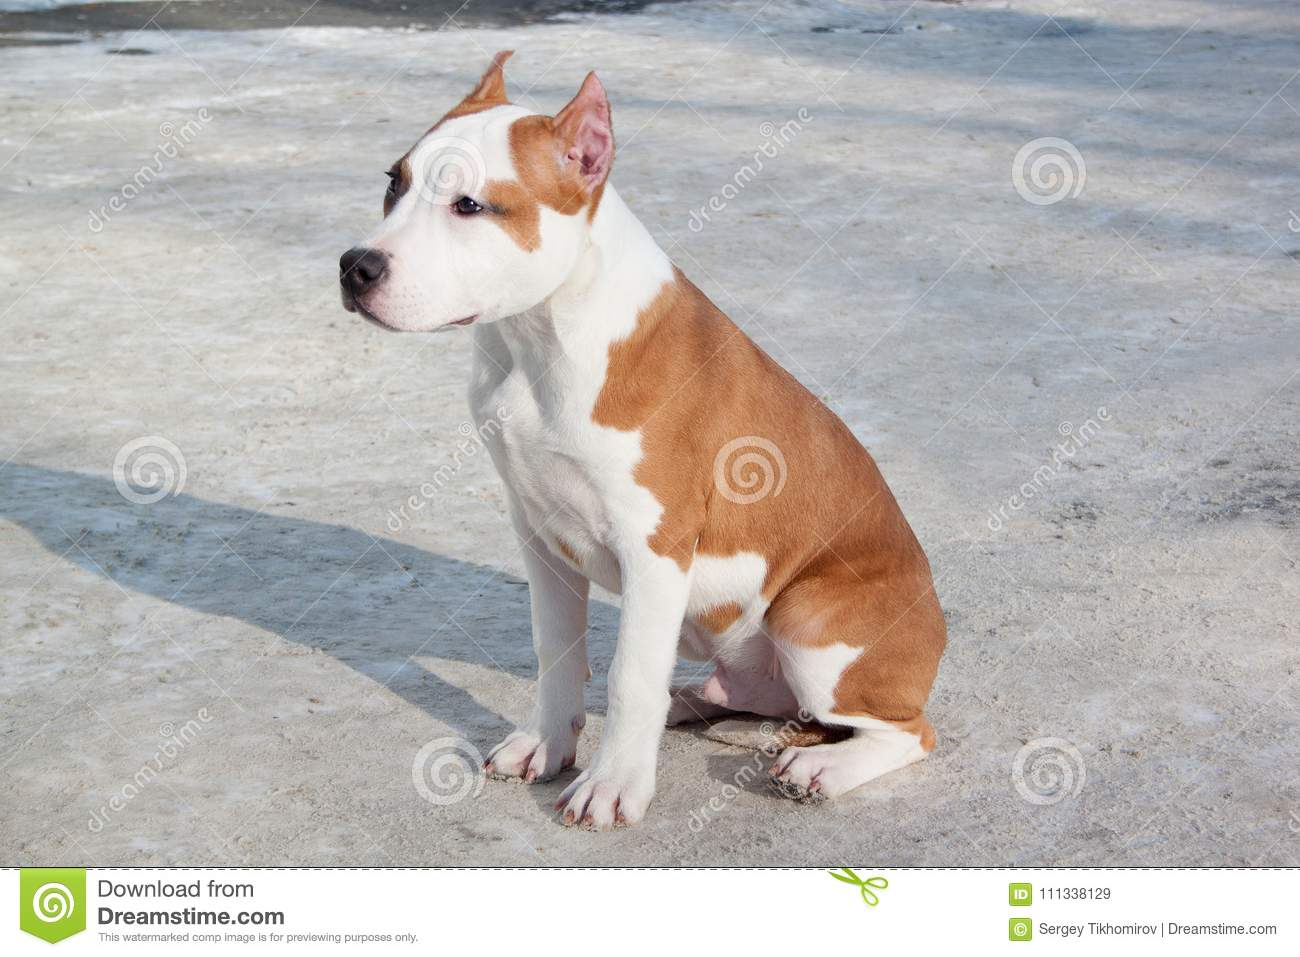 American Staffordshire Terrier Puppy Is Sitting On A White